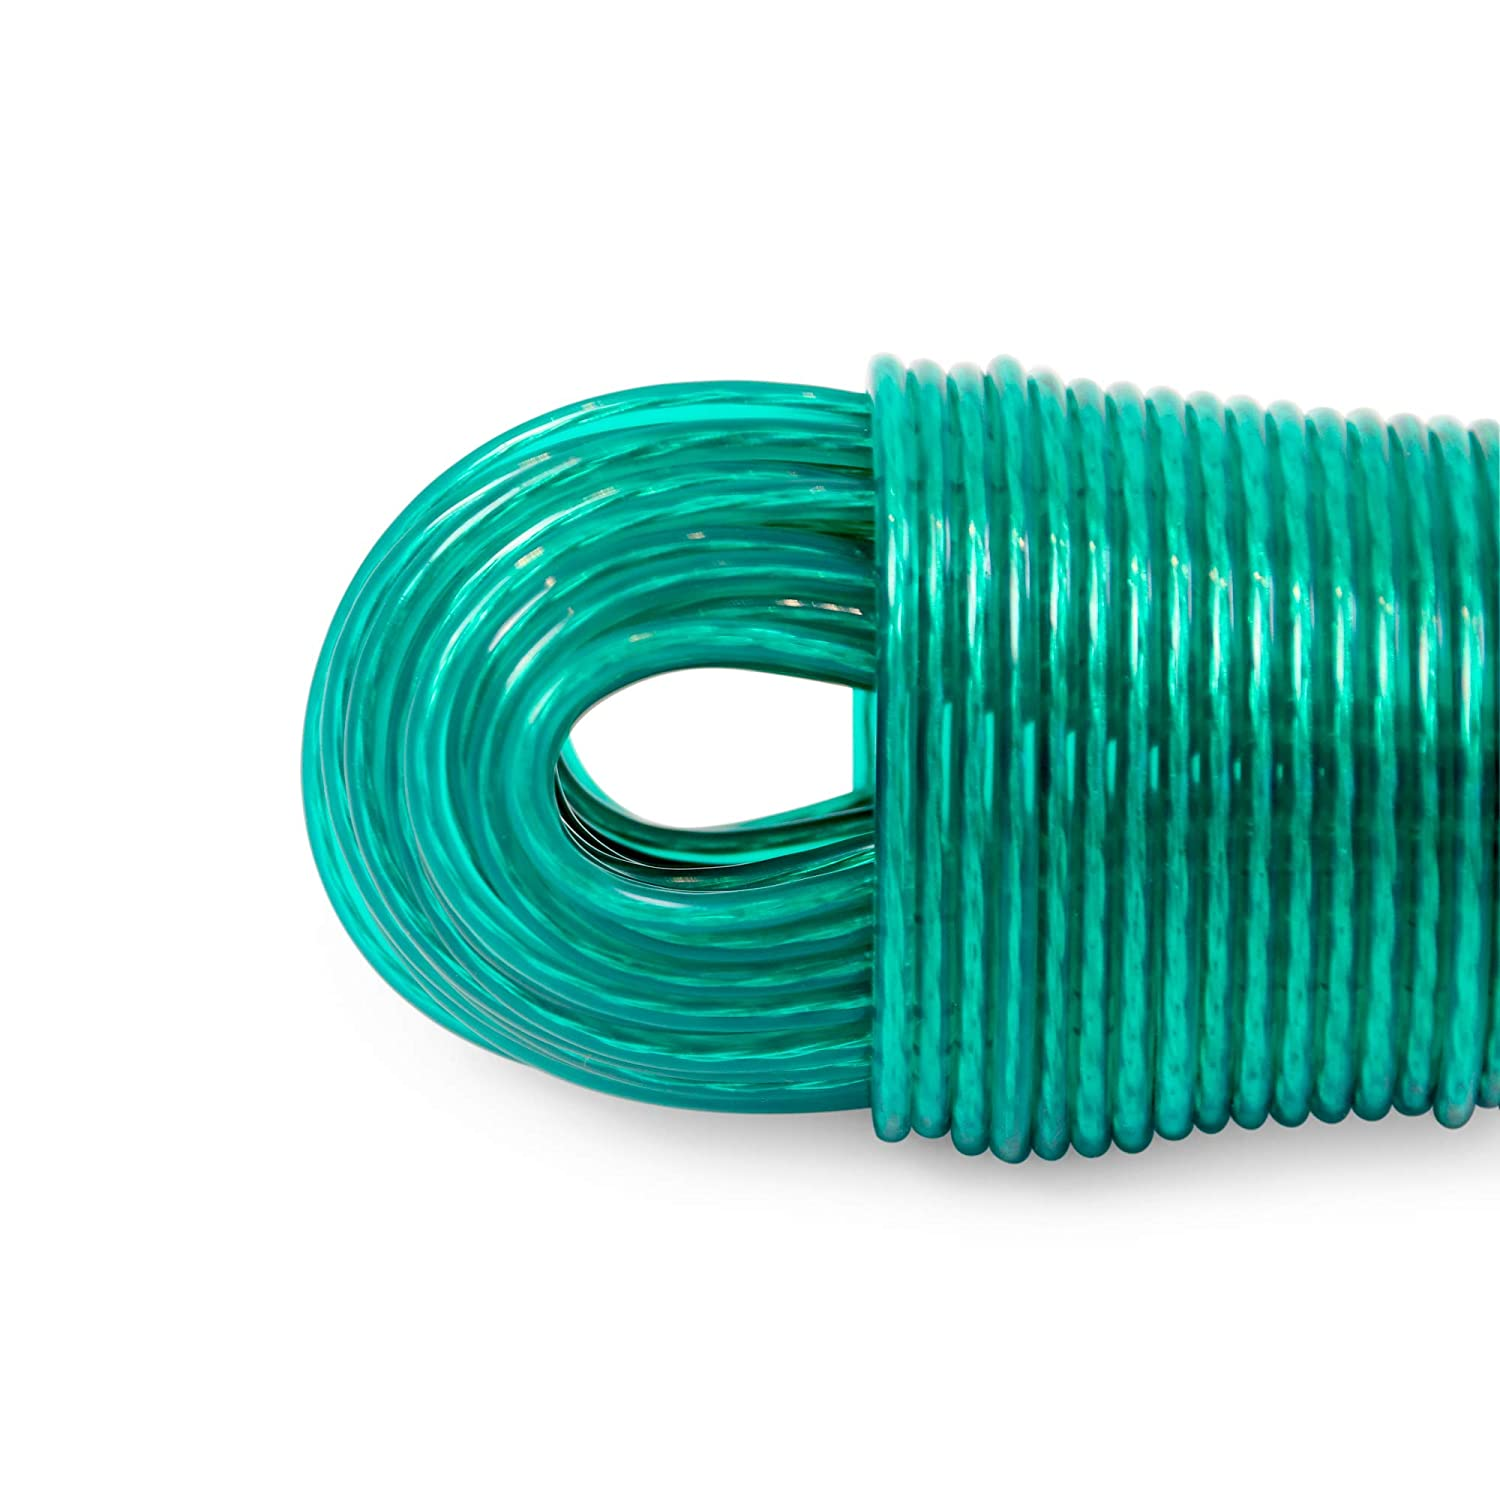 WASHING LINE 50 metres with Steel Core Extra Sturdy and Extra Long UV-resistant